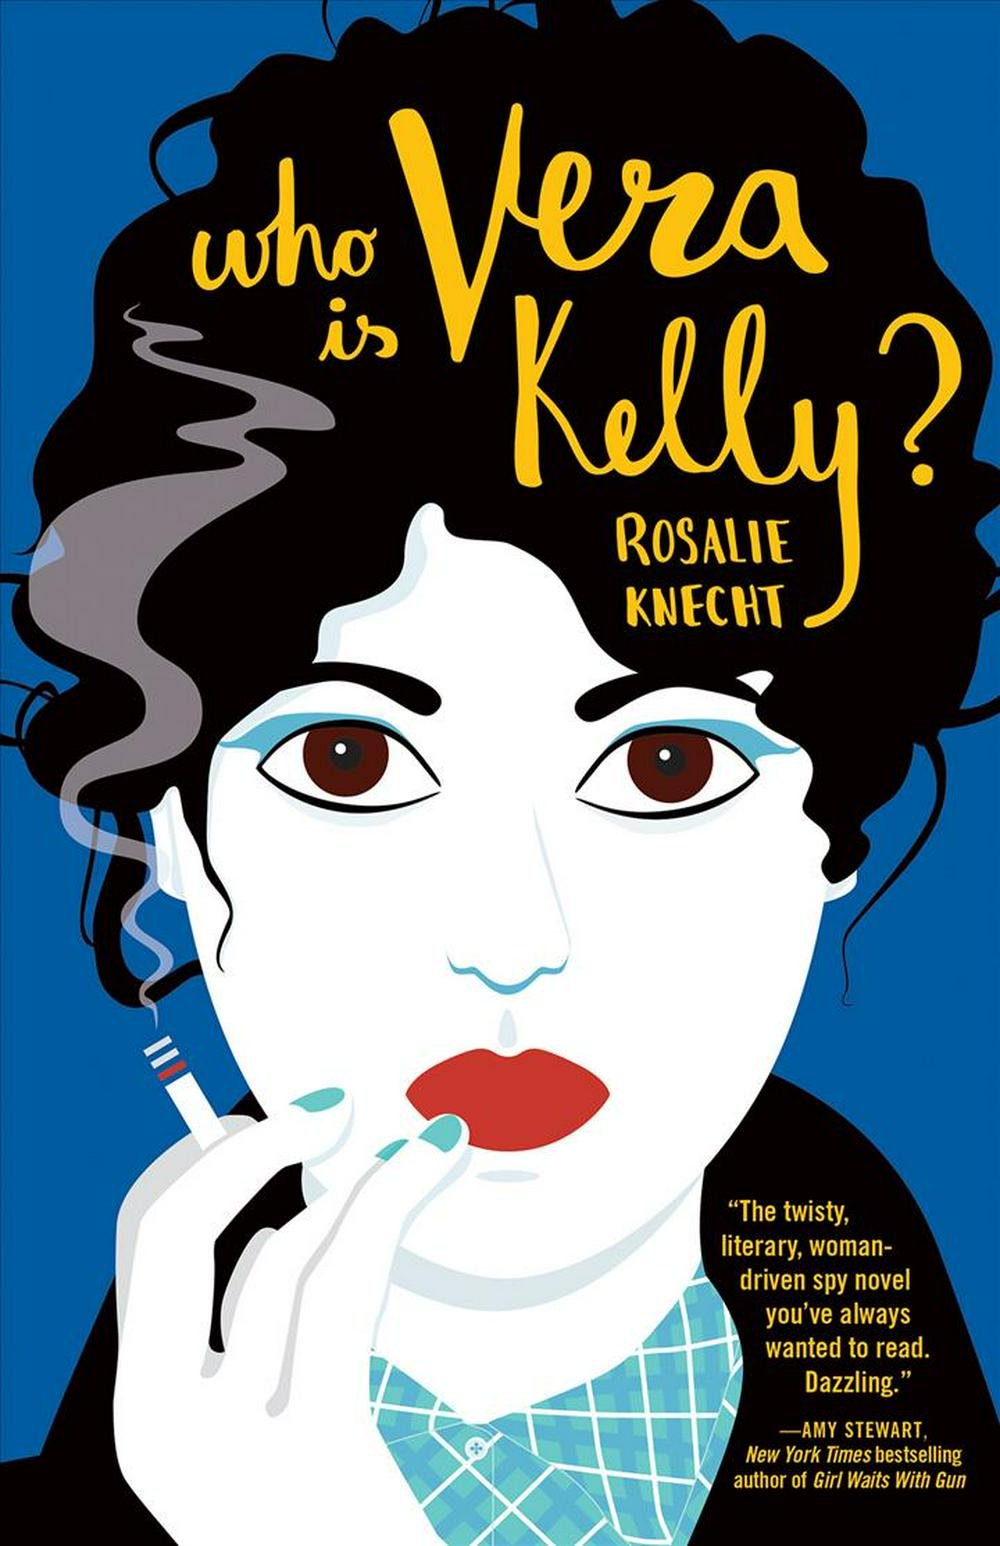 Who Is Vera Kelly? by Rosalie Knecht, ISBN: 9781947793019